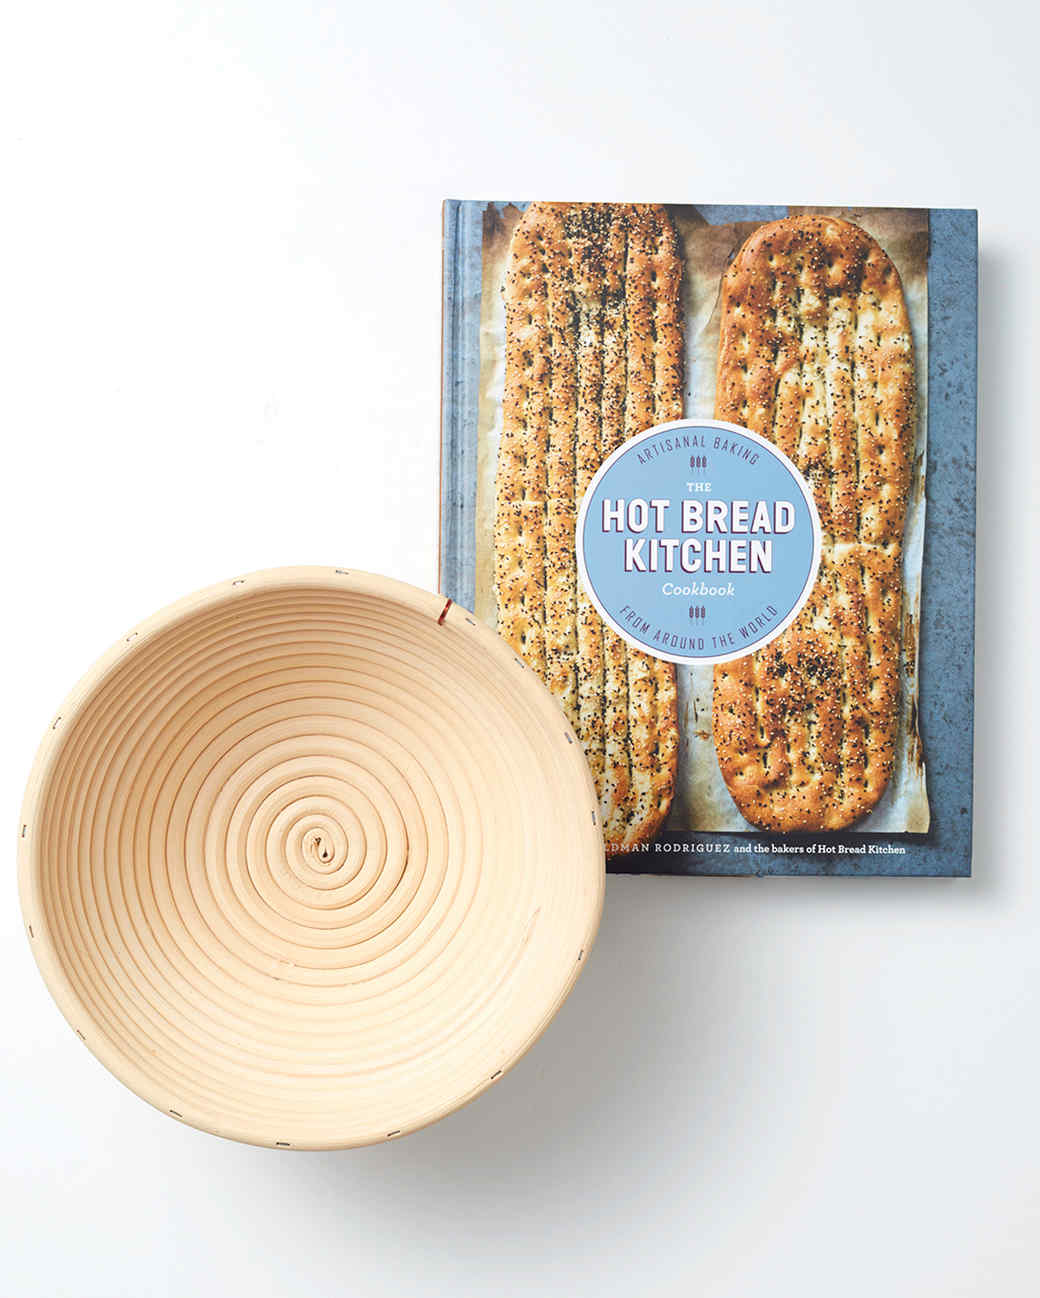 bread-book-with-basket-065-d112519.jpg